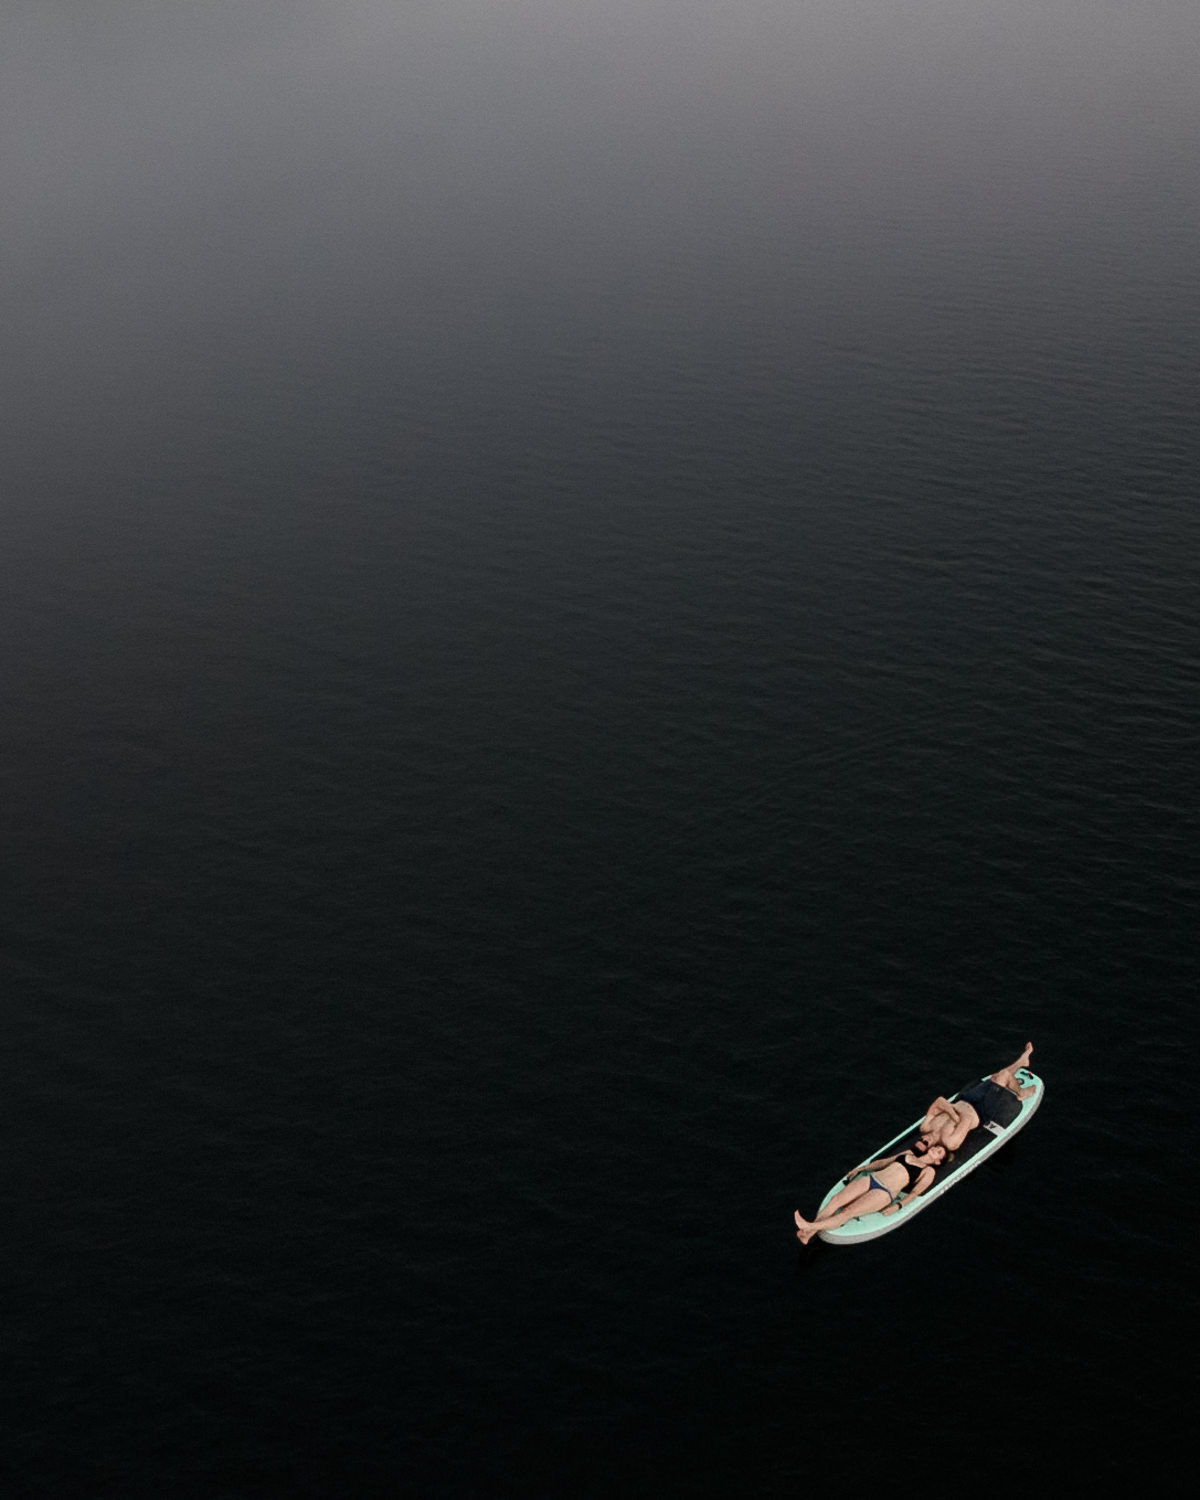 drone sup photograph of couple